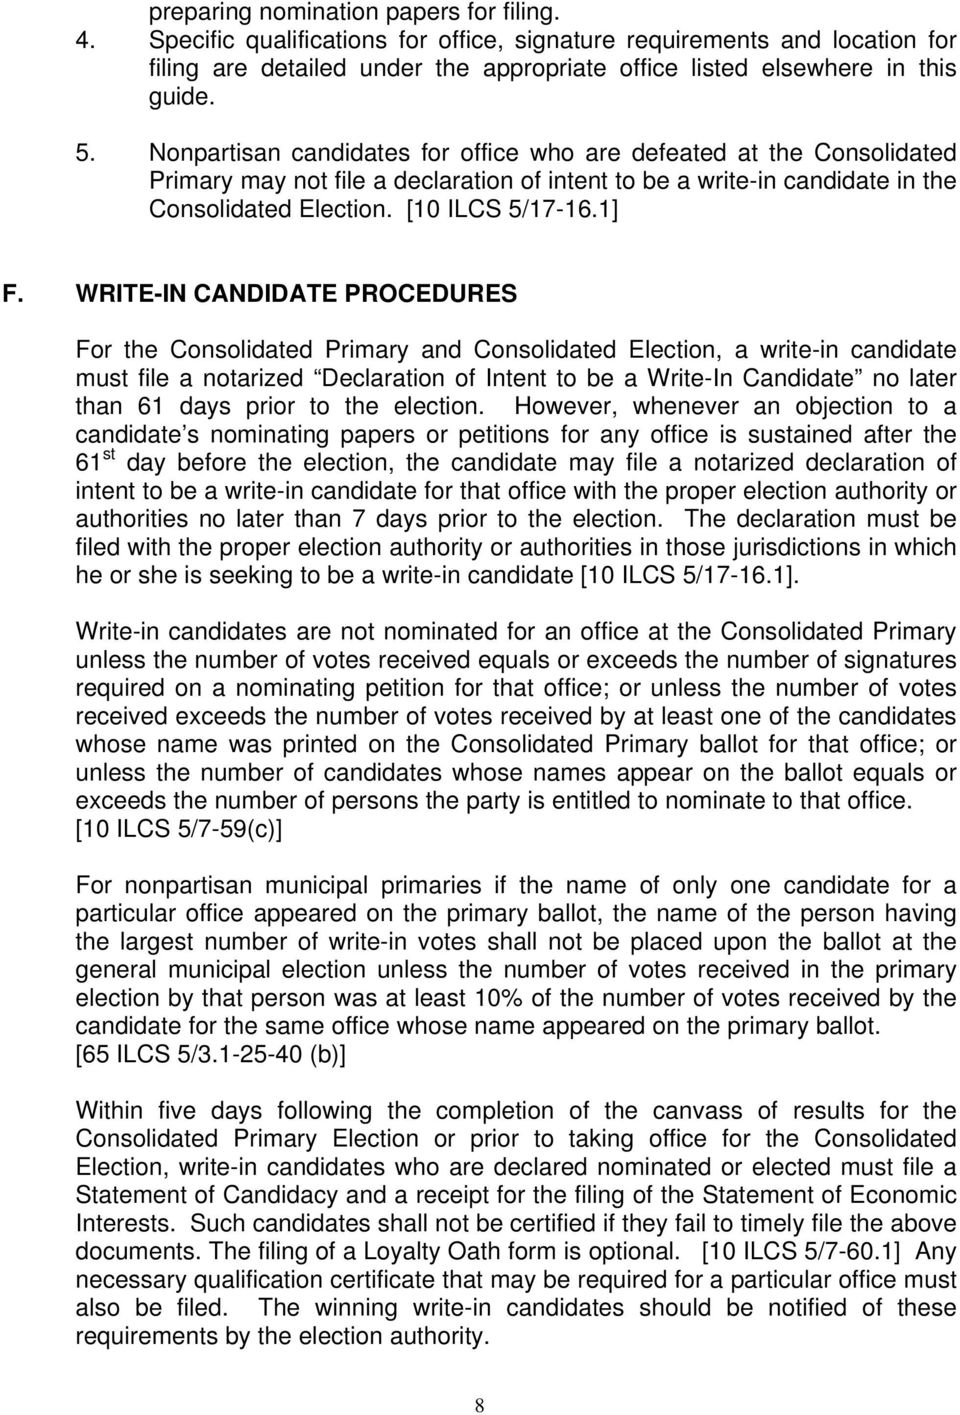 WRITE-IN CANDIDATE PROCEDURES For the Consolidated Primary and Consolidated Election, a write-in candidate must file a notarized Declaration of Intent to be a Write-In Candidate no later than 61 days